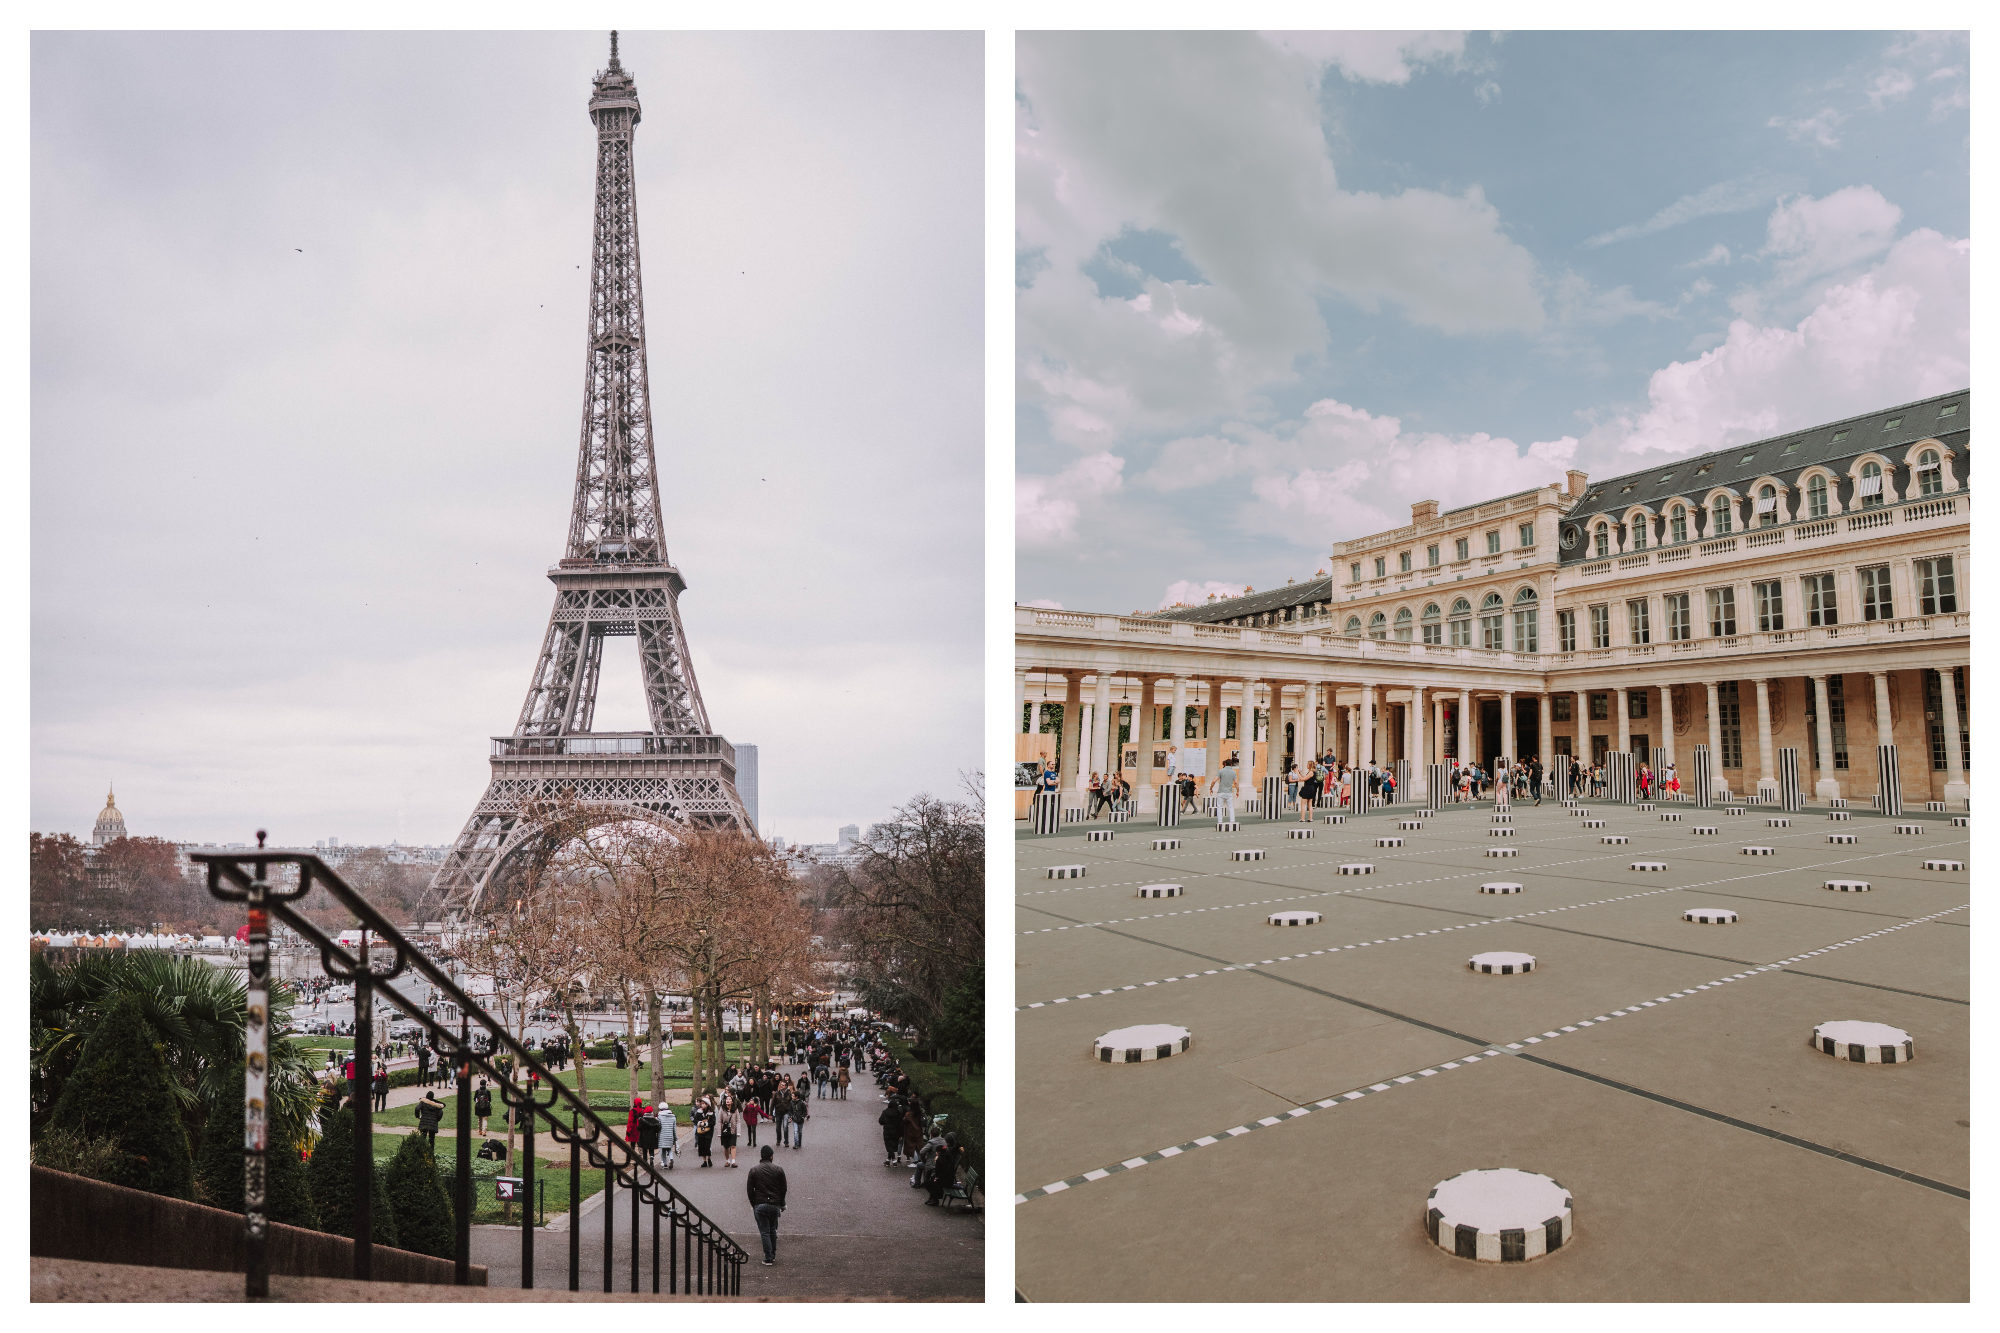 A view of the Eiffel Tower under gray skies in winter (left). Buren's columns art installation in the Jardin du Palais Royal (right).